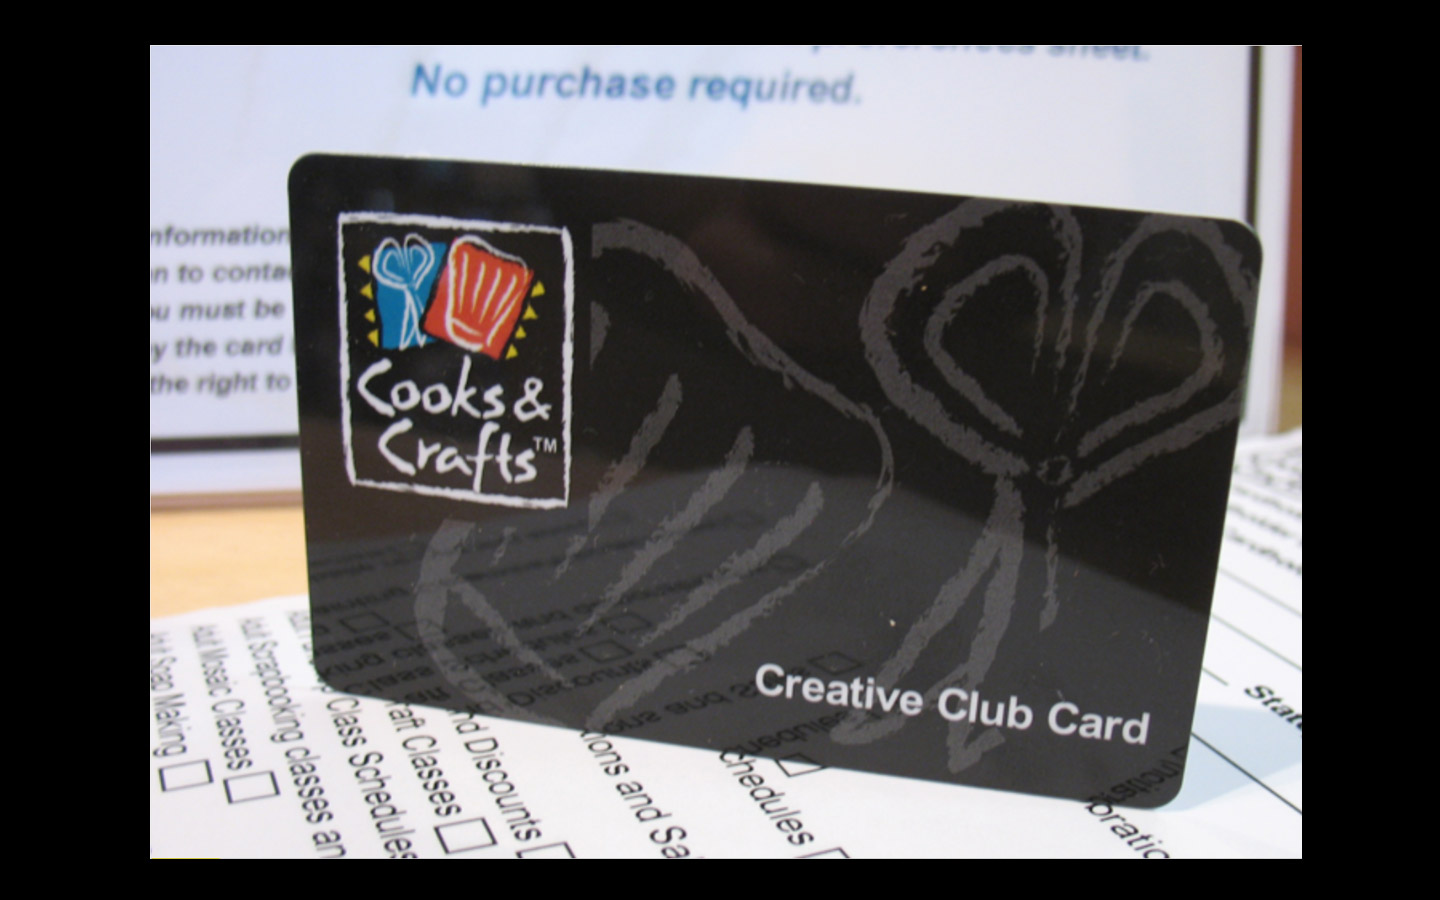 <p>Loyalty Program cards and forms</p>